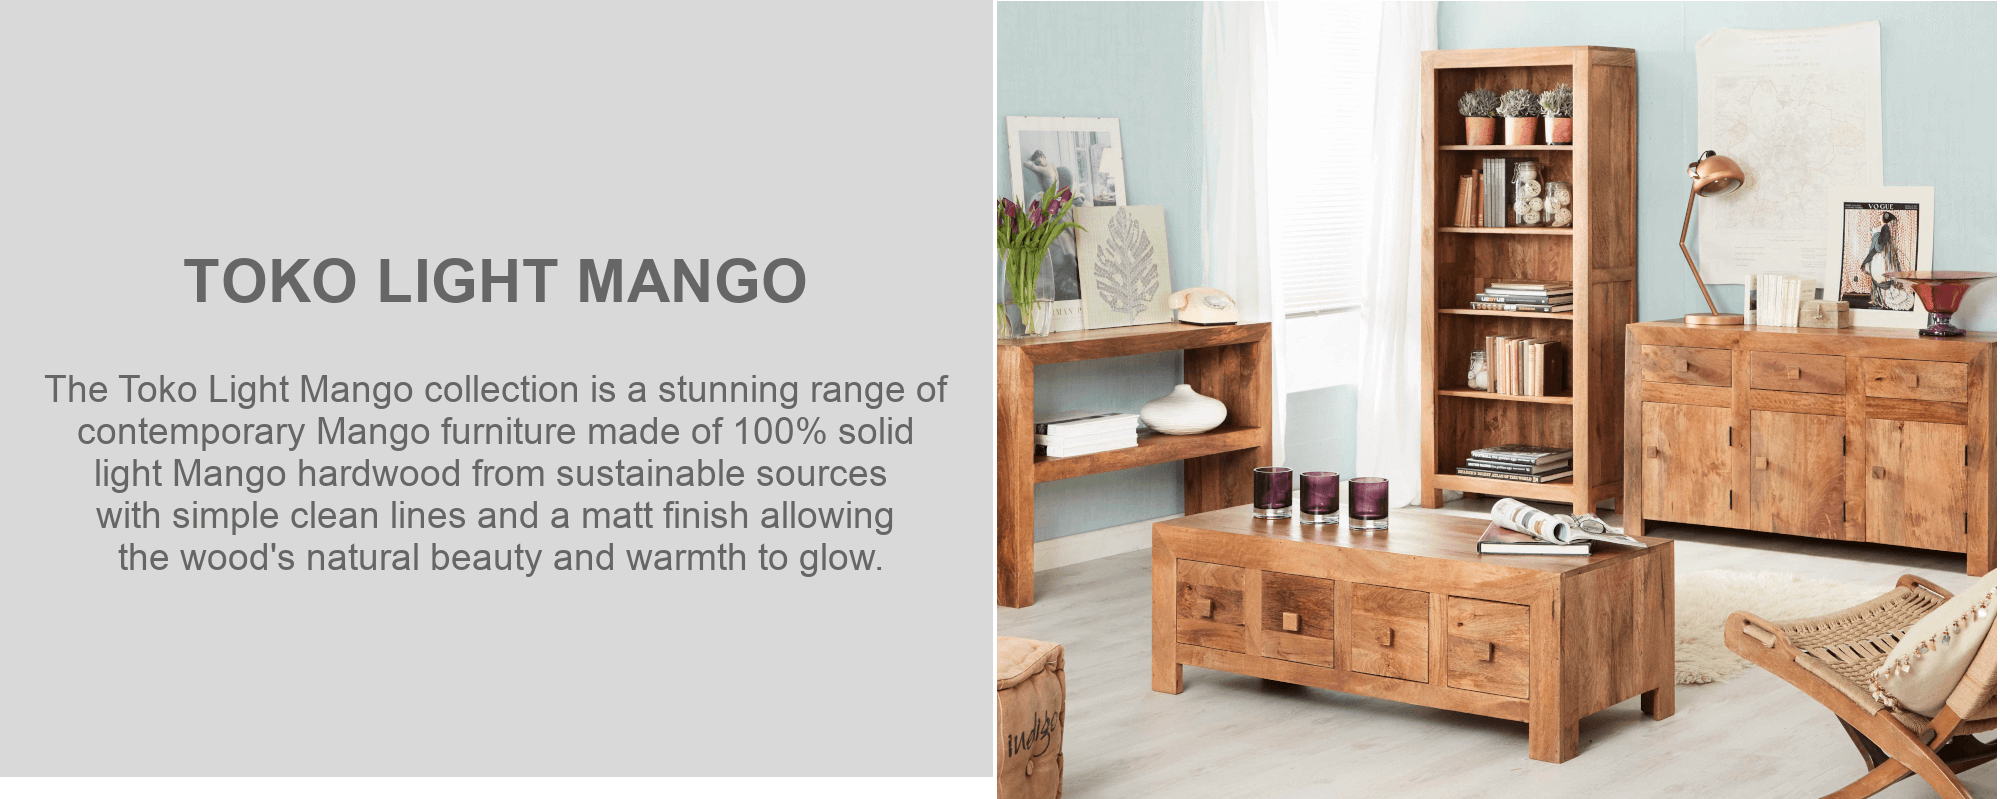 Toko light mango coffee table furniture